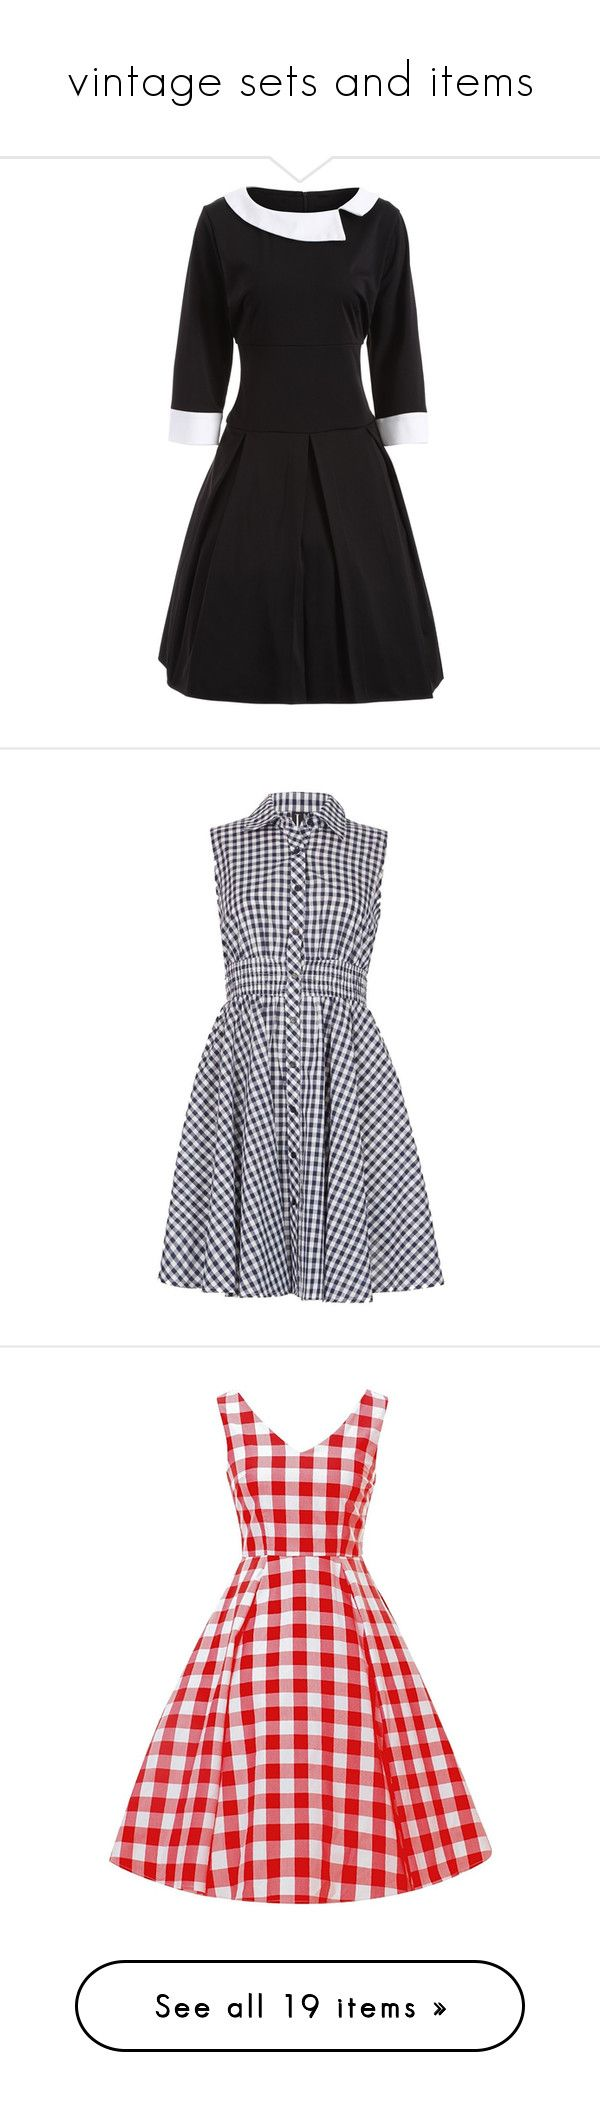 """""""vintage sets and items"""" by elliebean16 ❤ liked on Polyvore featuring Chanel, Bill Blass, vintage, dresses, women plus size dresses, womens plus dresses, vintage dresses, 2 tone dress, vintage day dress and navy"""